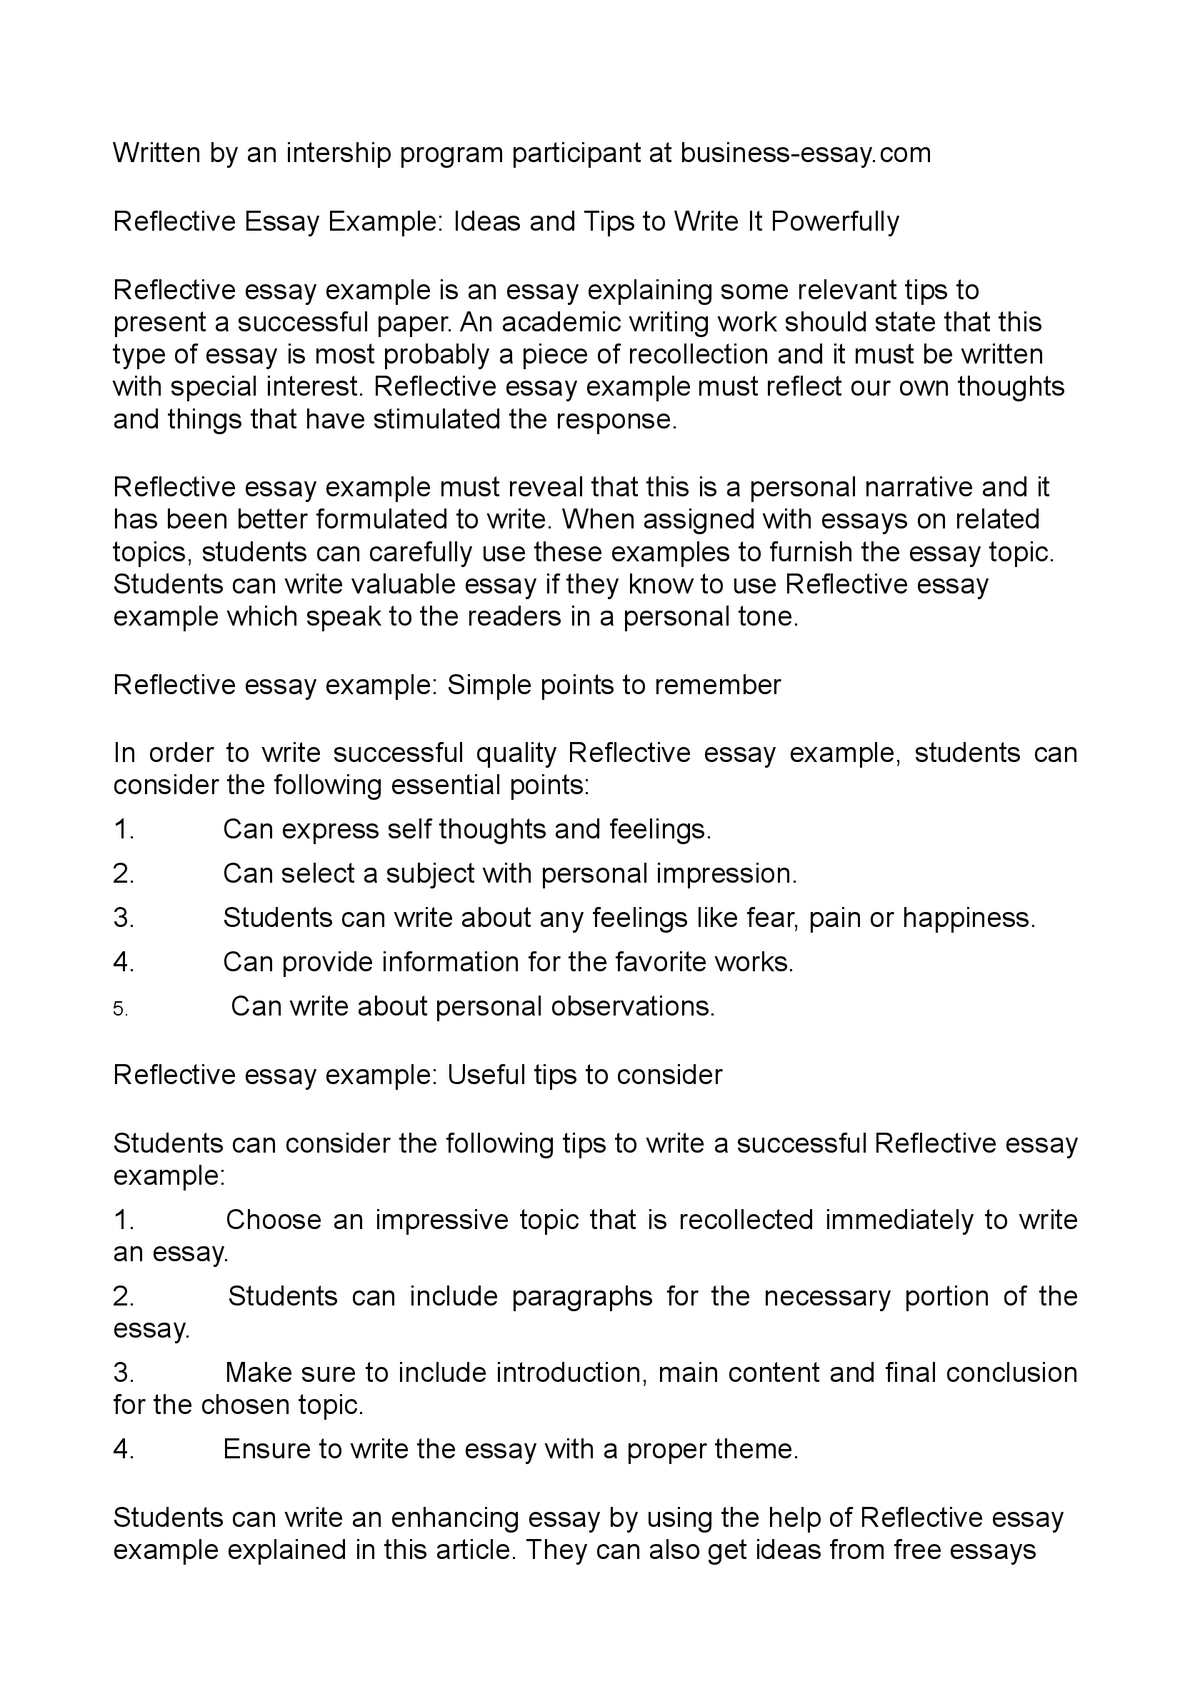 014 reflective writing and the revision process what were